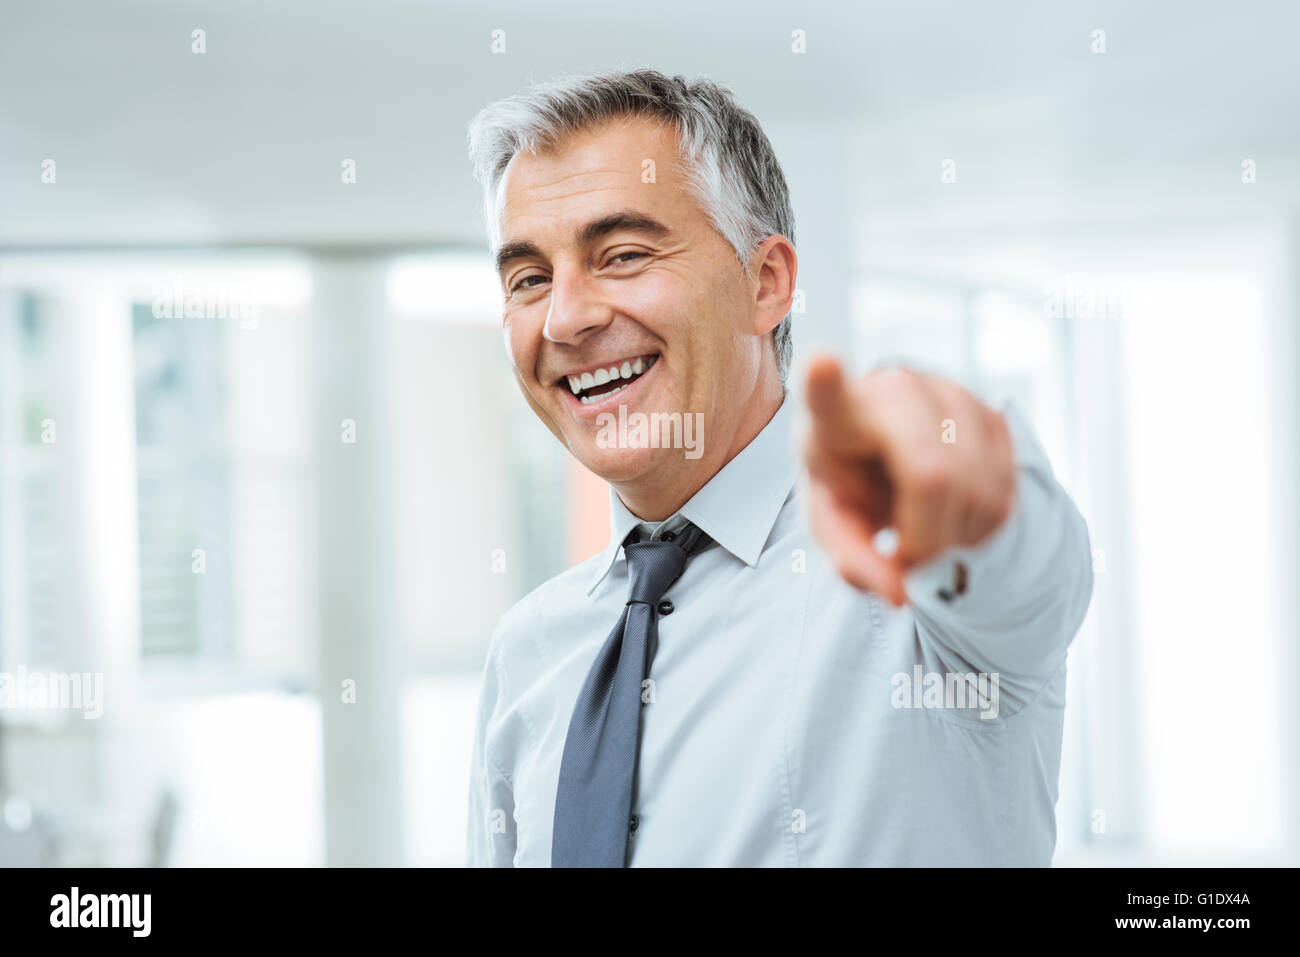 Cheerful confident businessman pointing at camera, recruitment and choice concept - Stock Image